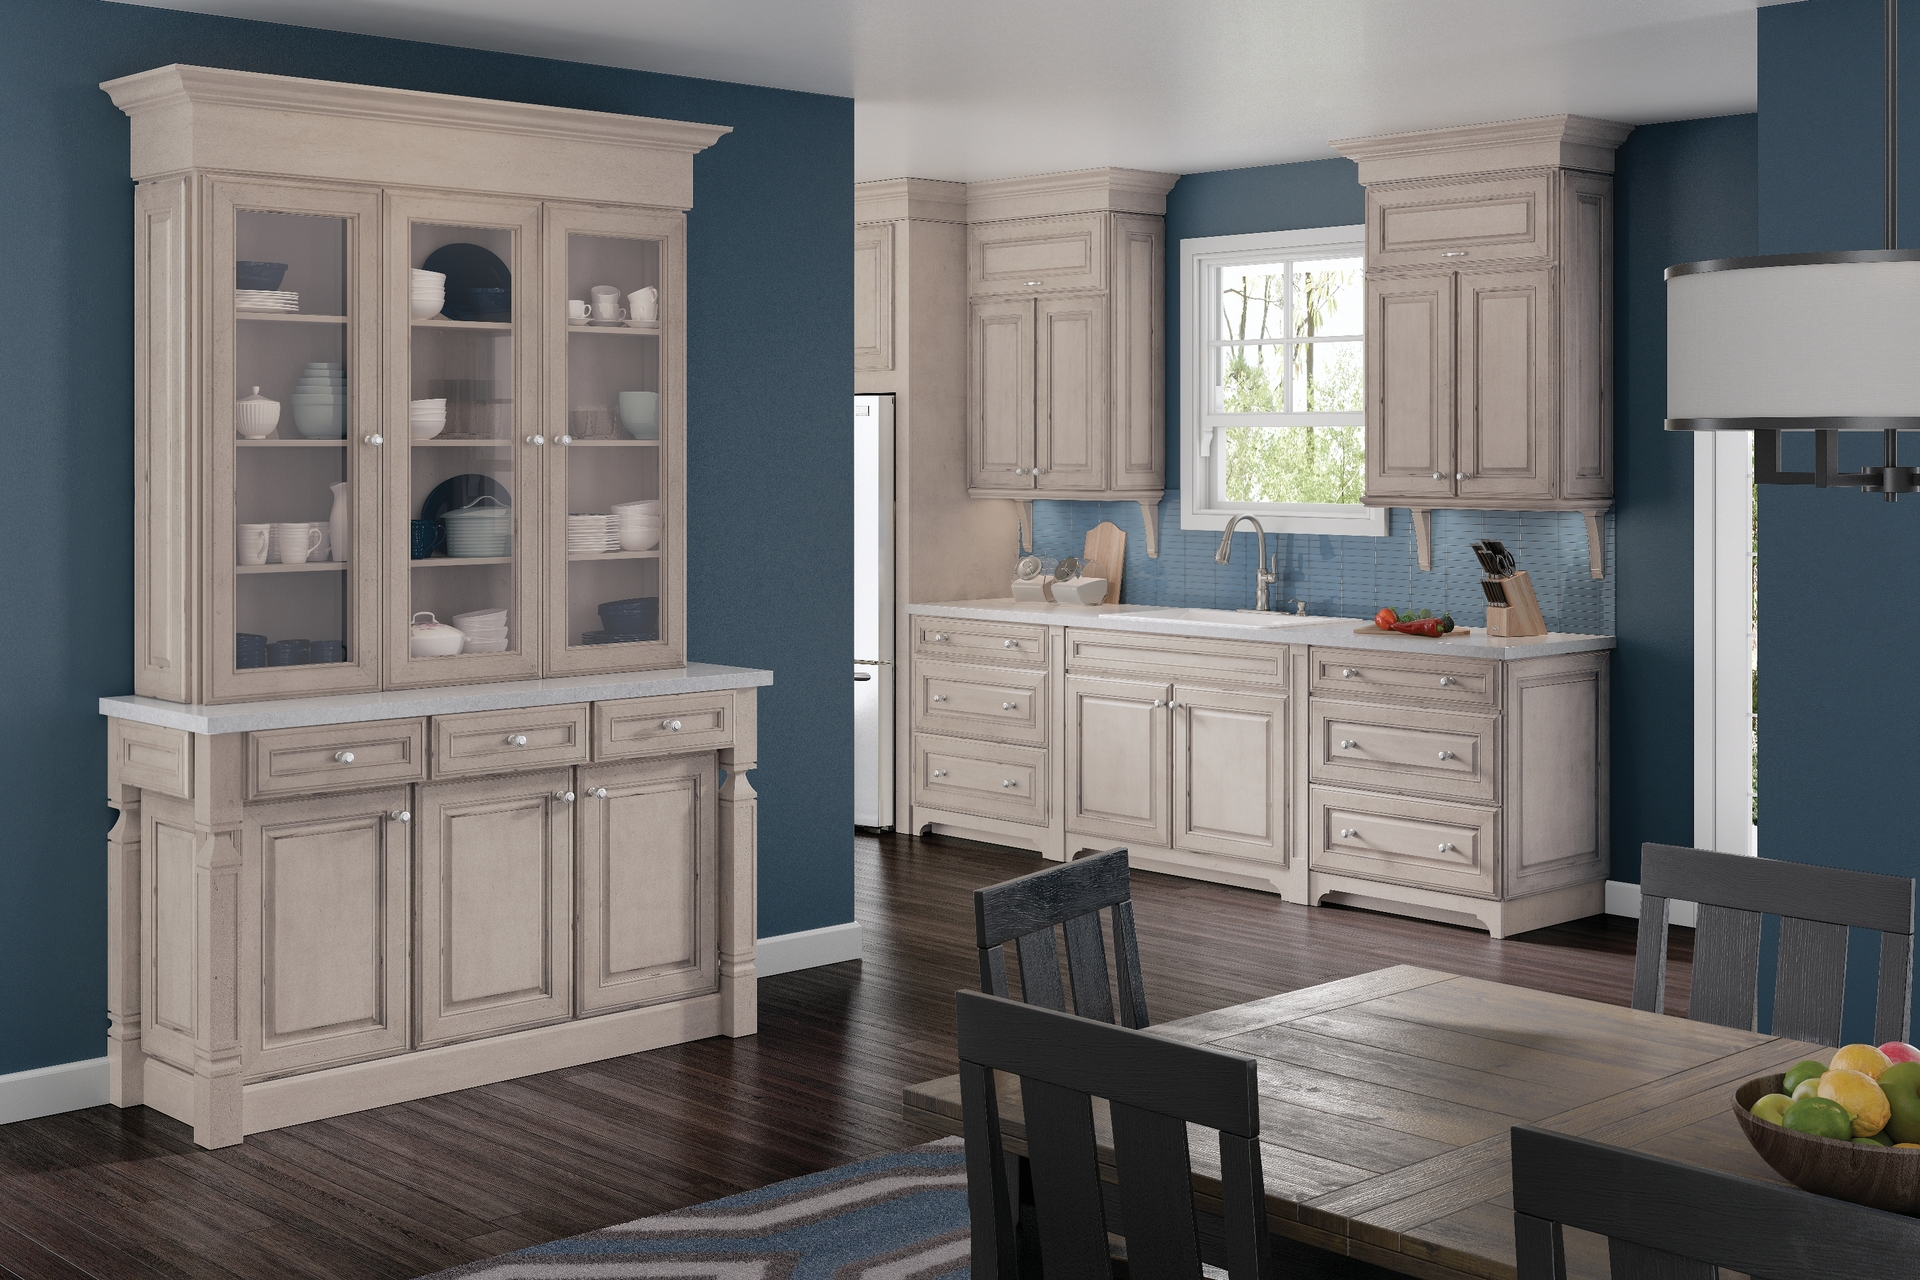 Cardell Kitchen Cabinets - Jolina Maple in Aged Concrete